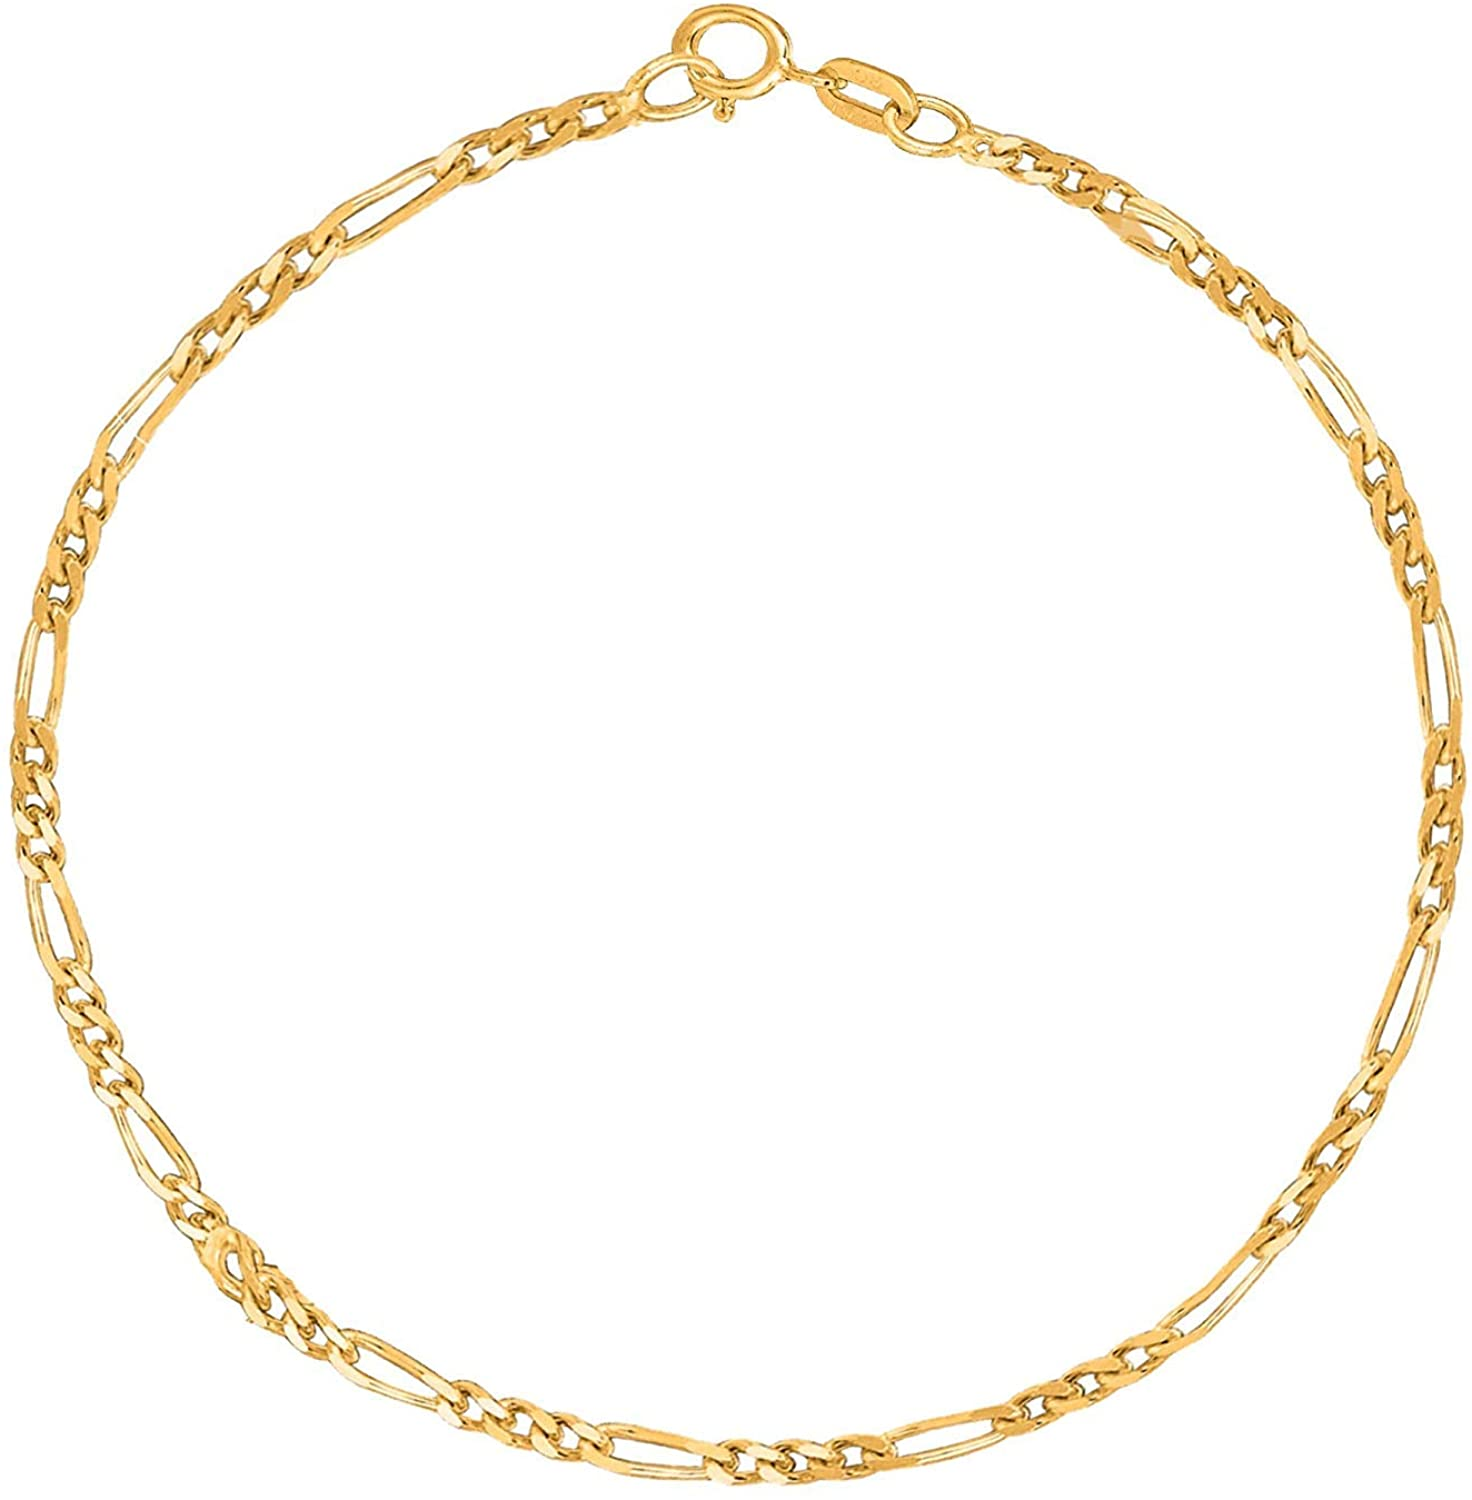 14k SOLID Yellow Or White Gold 1.9mm Diamond-Cut Alternate Classic Mens Figaro Chain Necklace Or Bracelet/Foot Anklet for Pendants and Charms with Spring-Ring Clasp (7